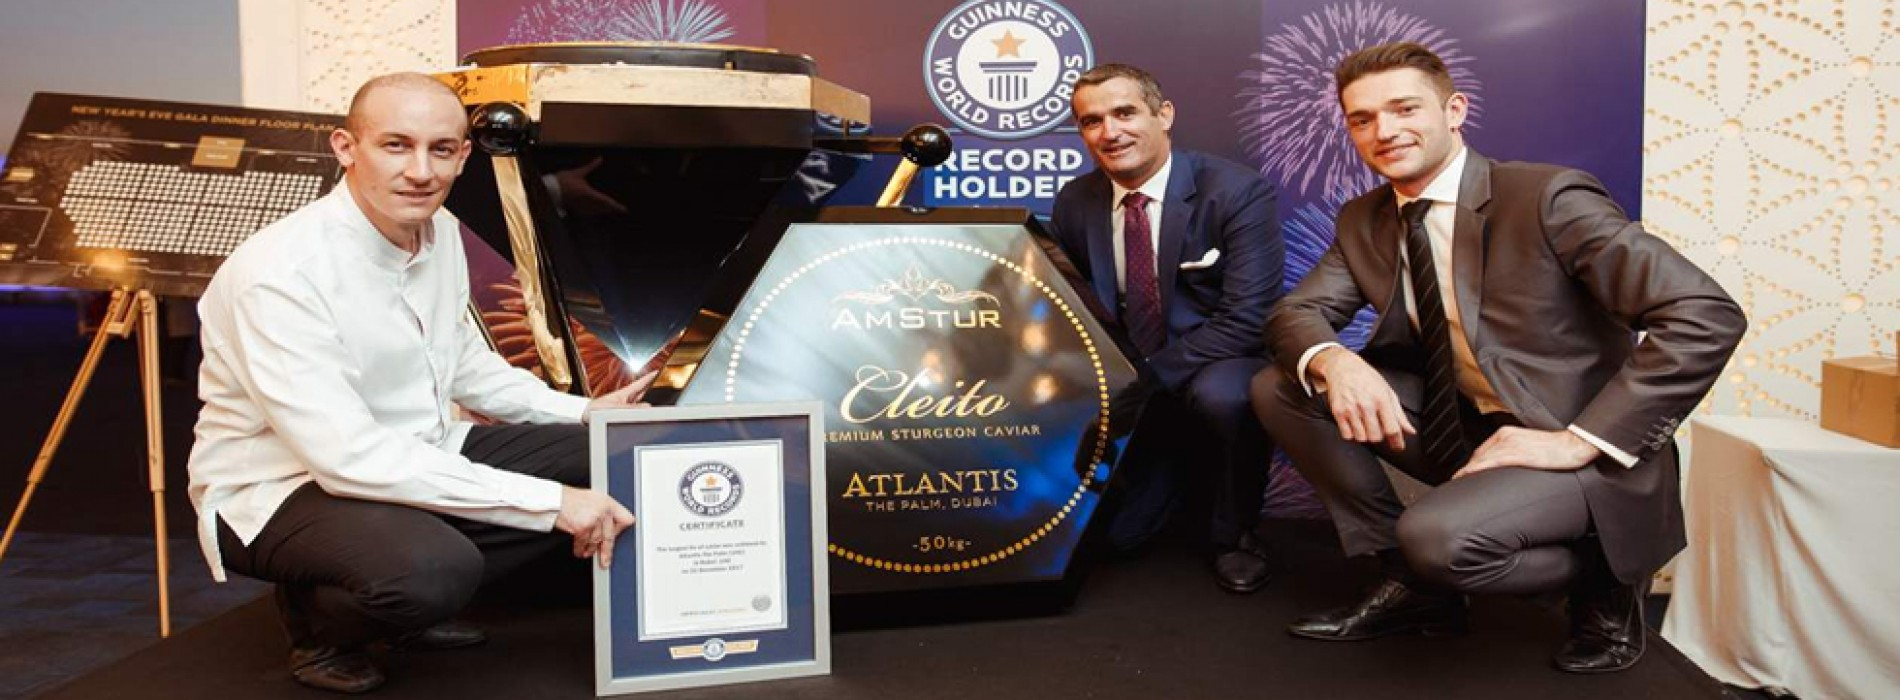 Atlantis, The Palm and AmStur Caviar break The Guiness World Record™ title for the world largest caviar tin